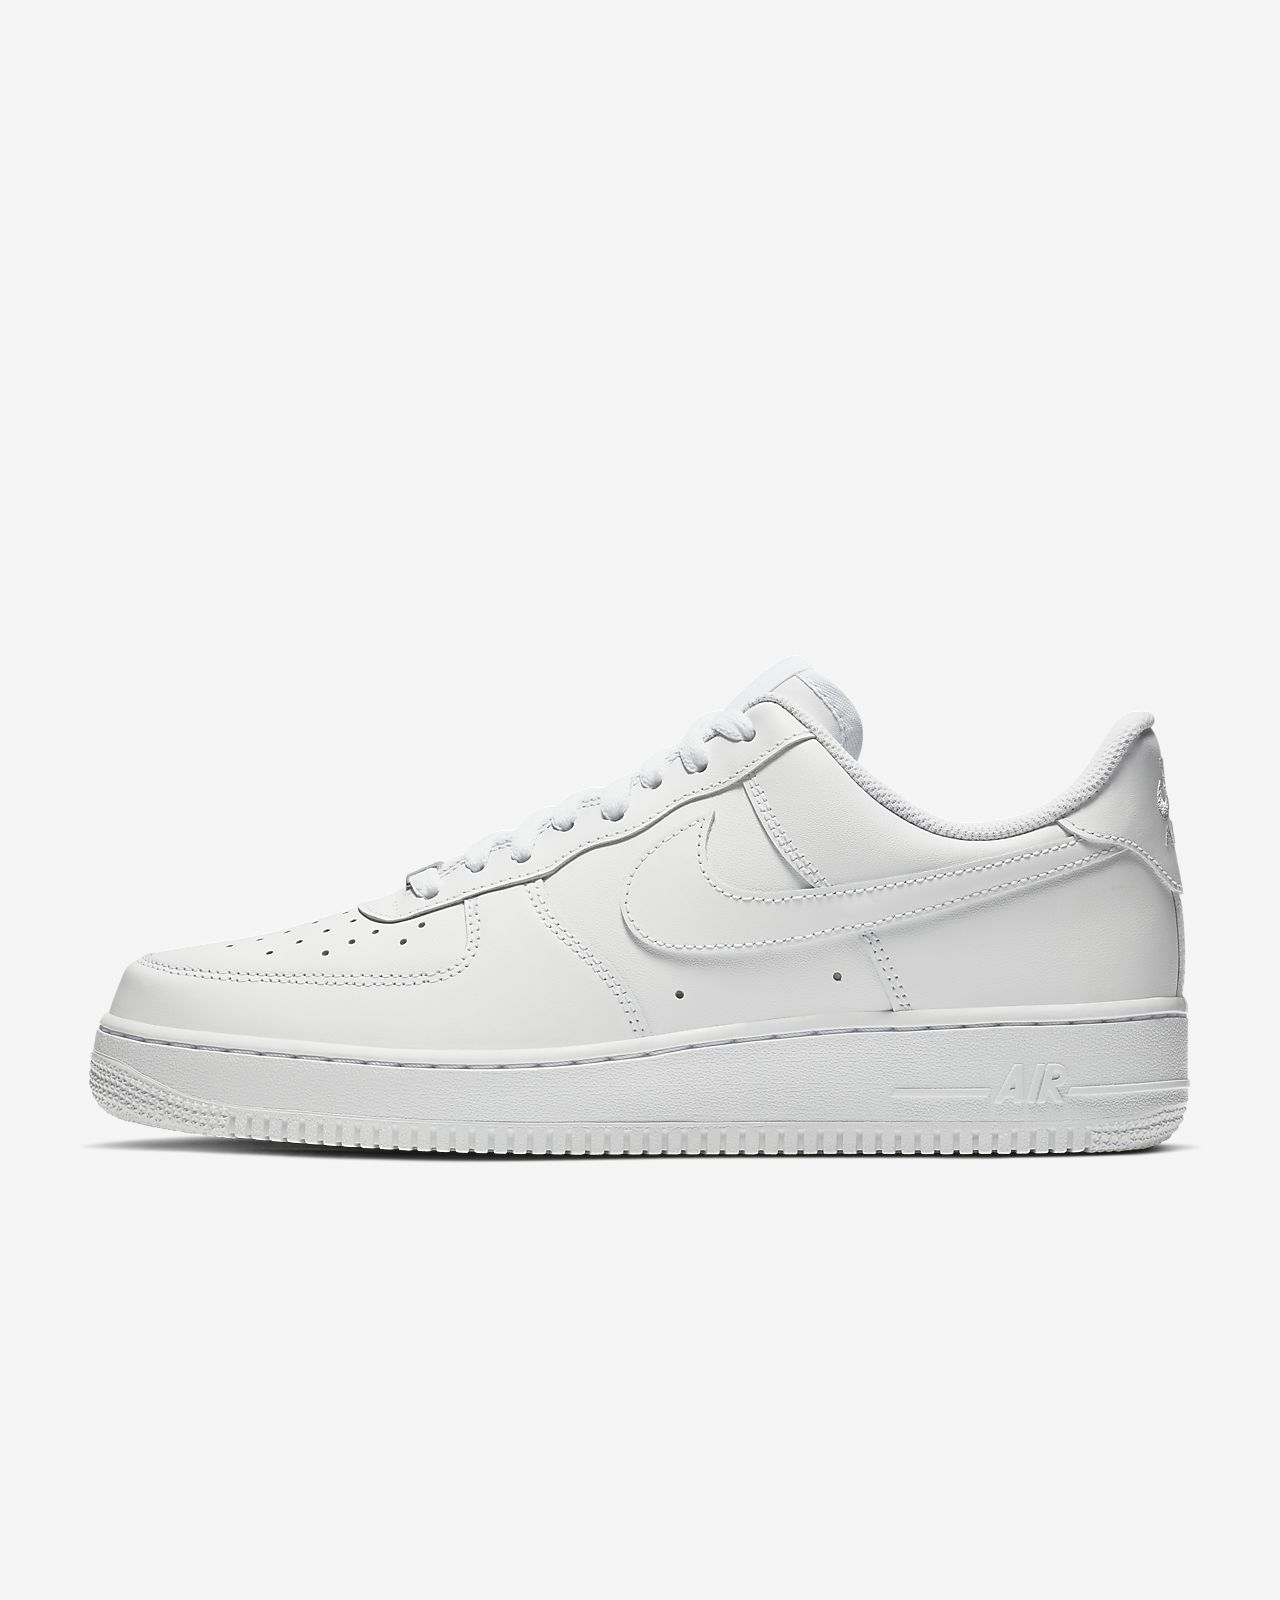 dbf639c00372 Low Resolution Nike Air Force 1  07 Shoe Nike Air Force 1  07 Shoe